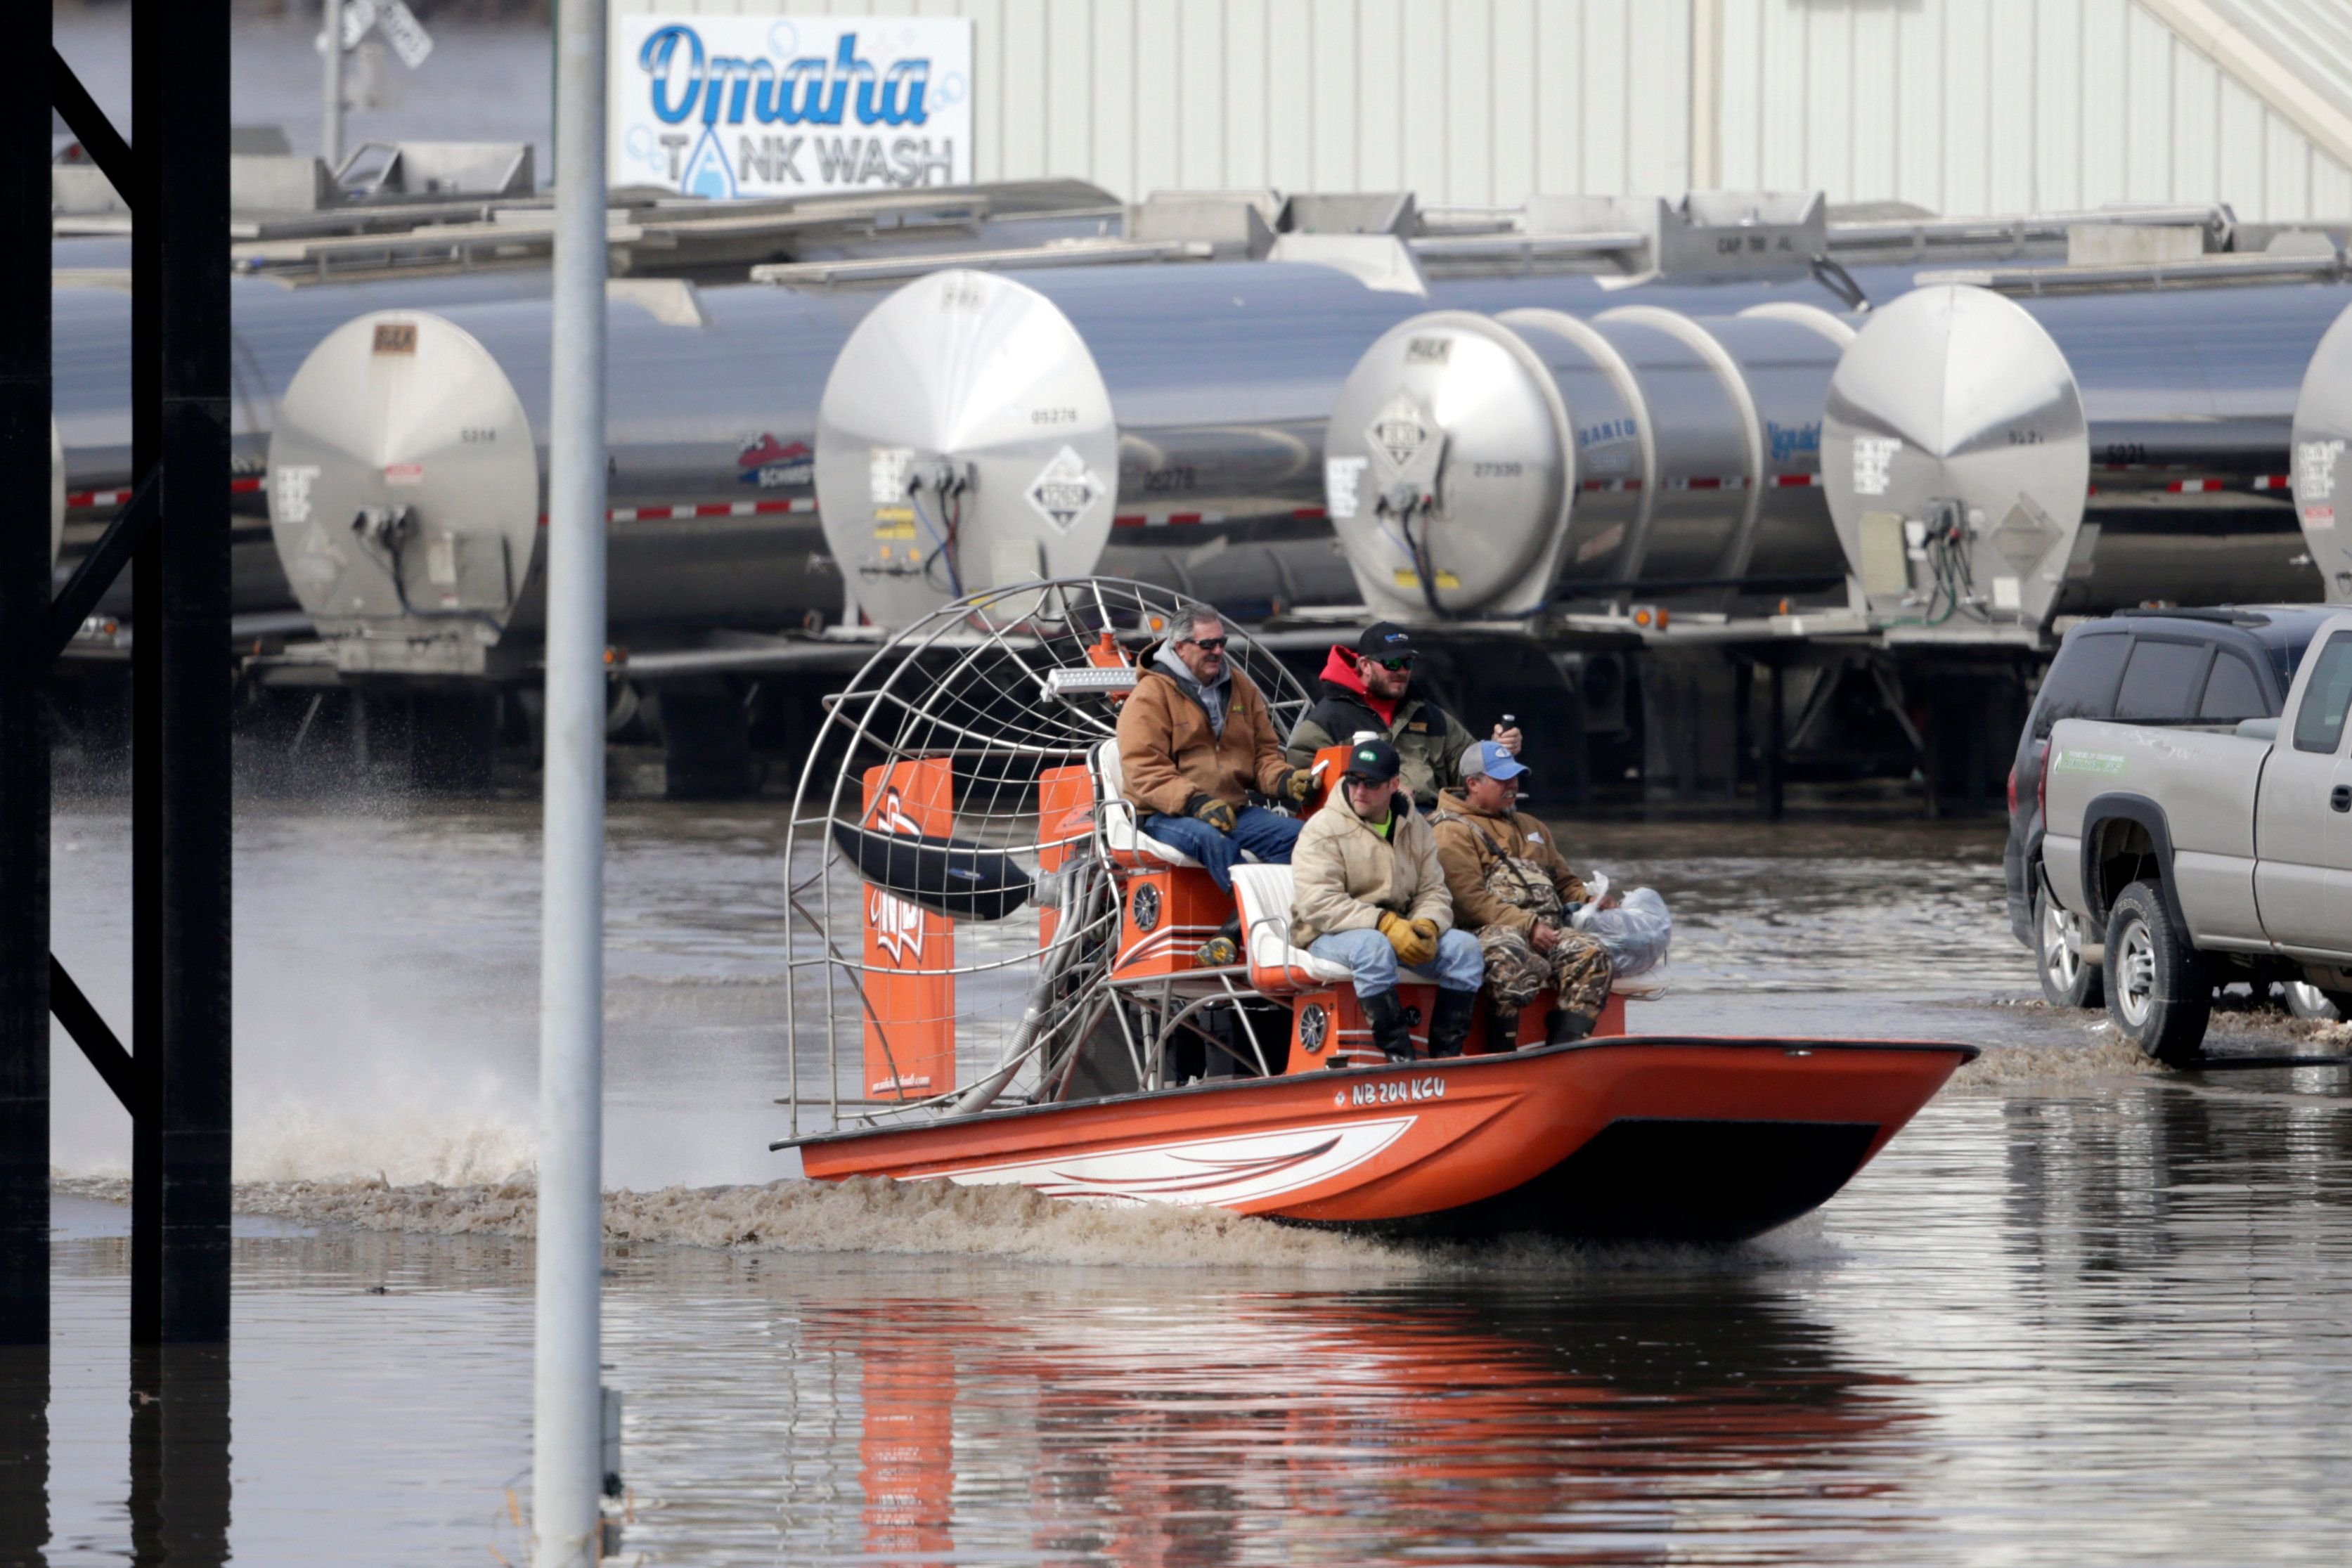 Gabe Schmidt, owner of Liquid Trucking, top right, travels by air boat with Glenn Wyles, top left, Mitch Snyder, bottom left, and Juan Jacobo, bottom right, as they survey damage from the flood waters of the Platte River, in Plattsmouth, Neb., Sunday, March 17, 2019. Hundreds of people remained out of their homes in Nebraska, but rivers there were starting to recede. The National Weather Service said the Elkhorn River remained at major flood stage but was dropping. (AP Photo/Nati Harnik)